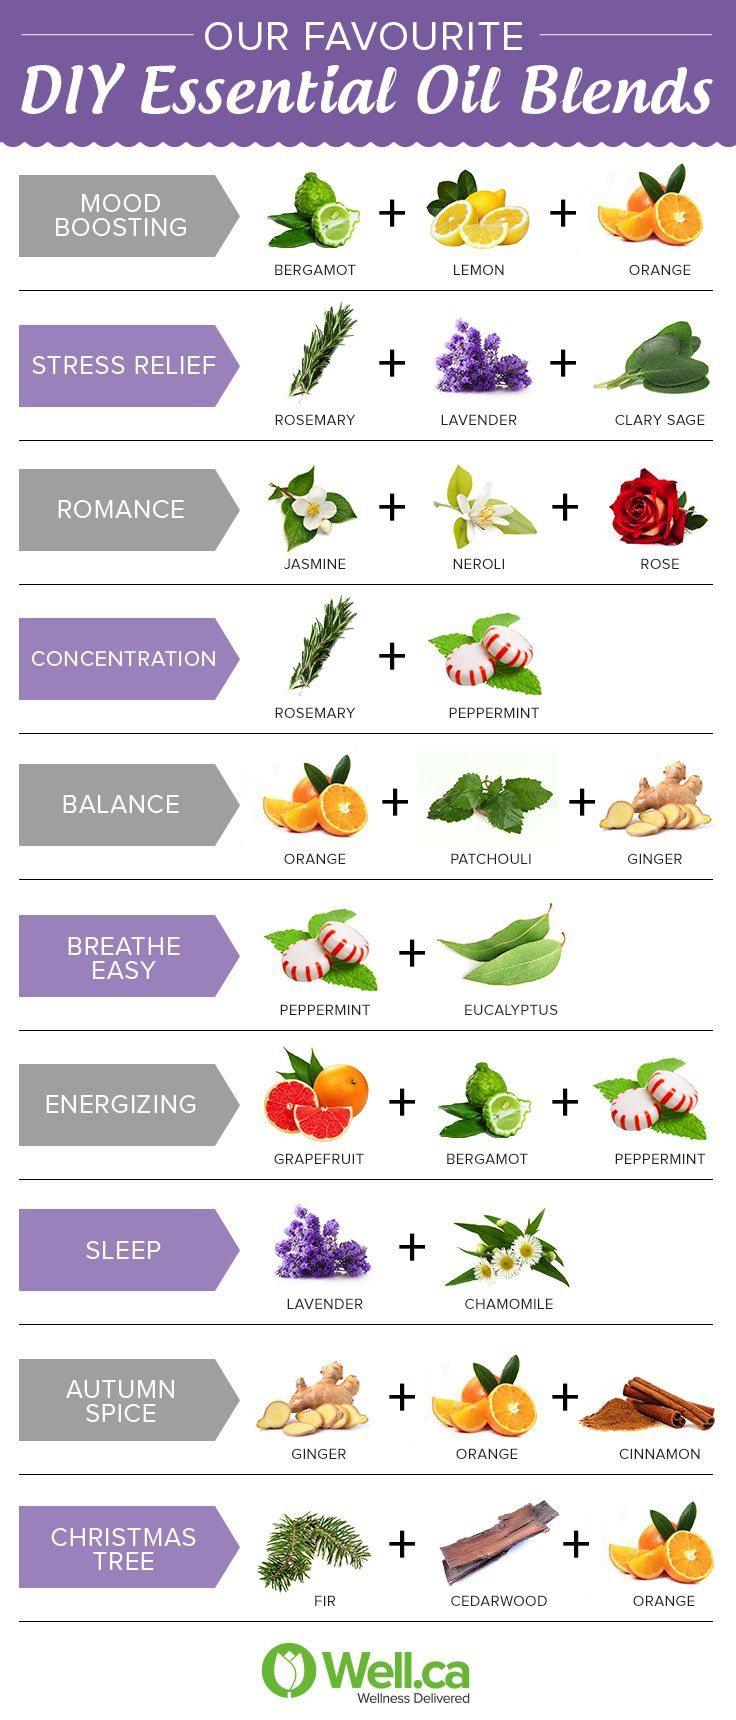 cool Our favourite essential oil blends for aromatherapy...byDiMagio